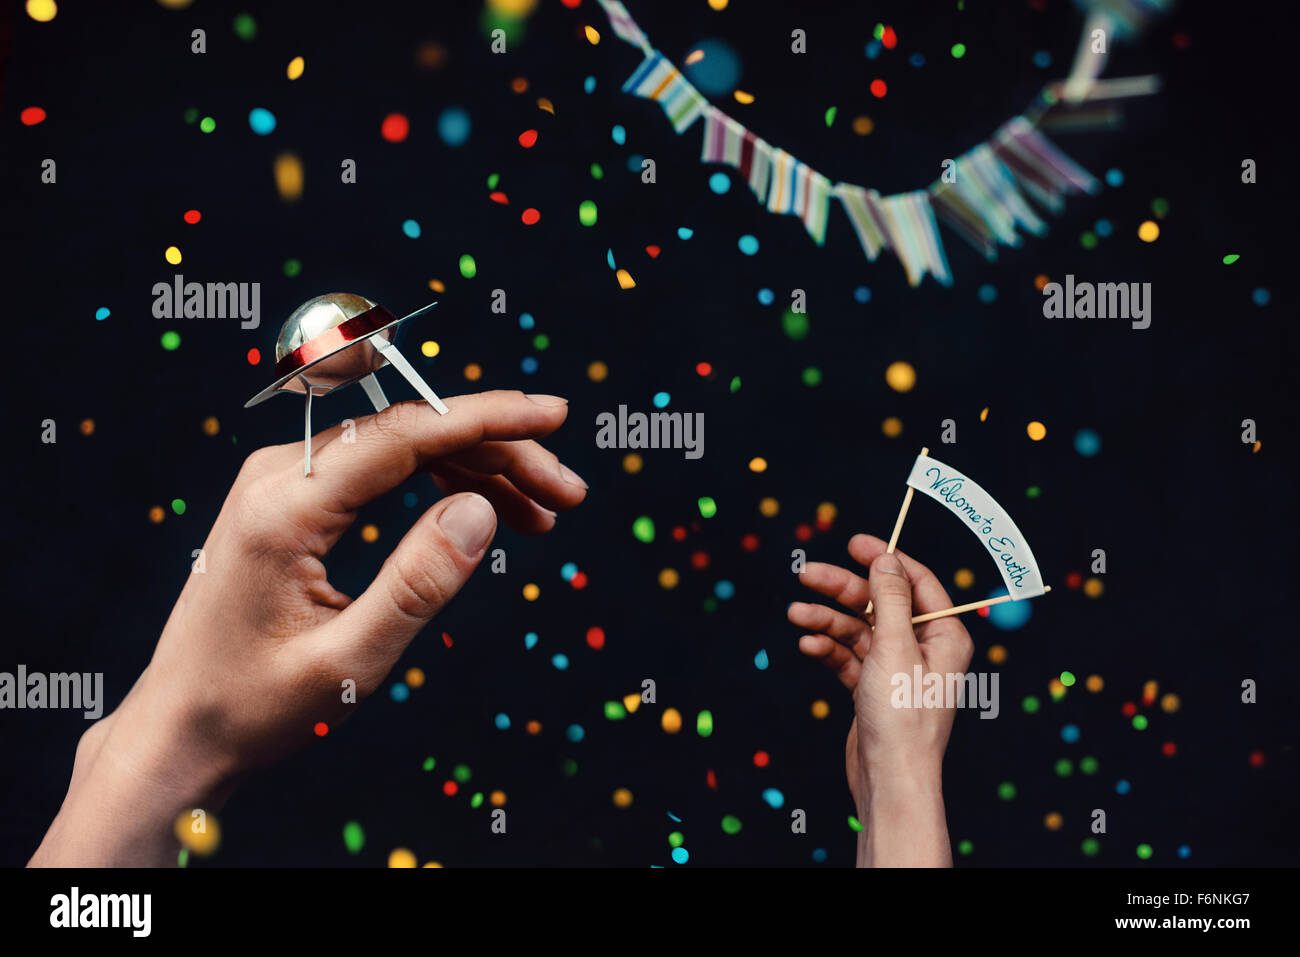 Willkommensparty Stockfoto